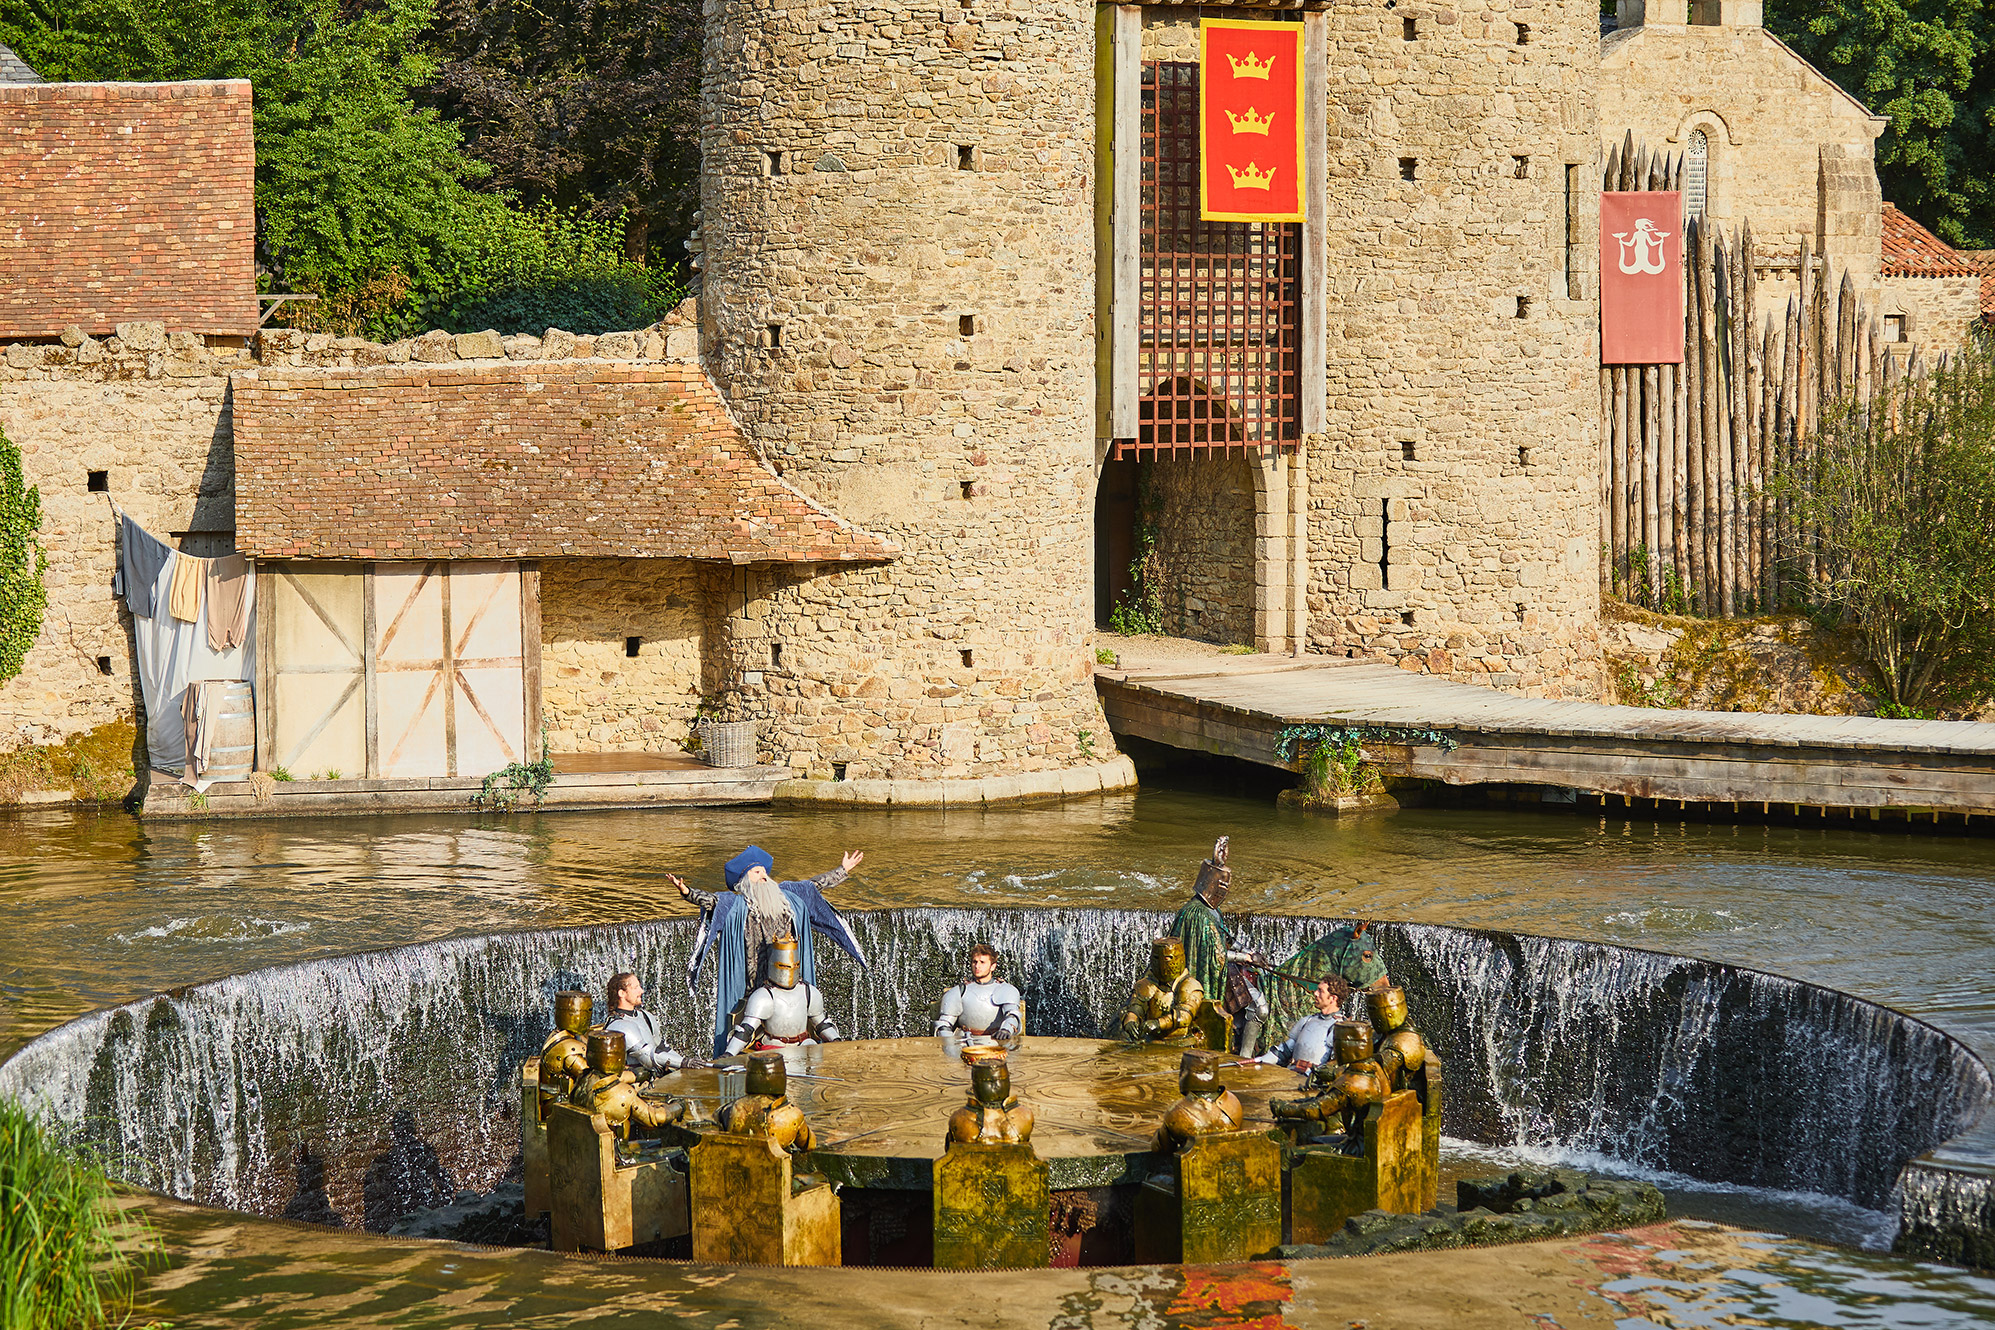 Les Chevaliers De La Table Ronde Spectacle Puy Du Fou